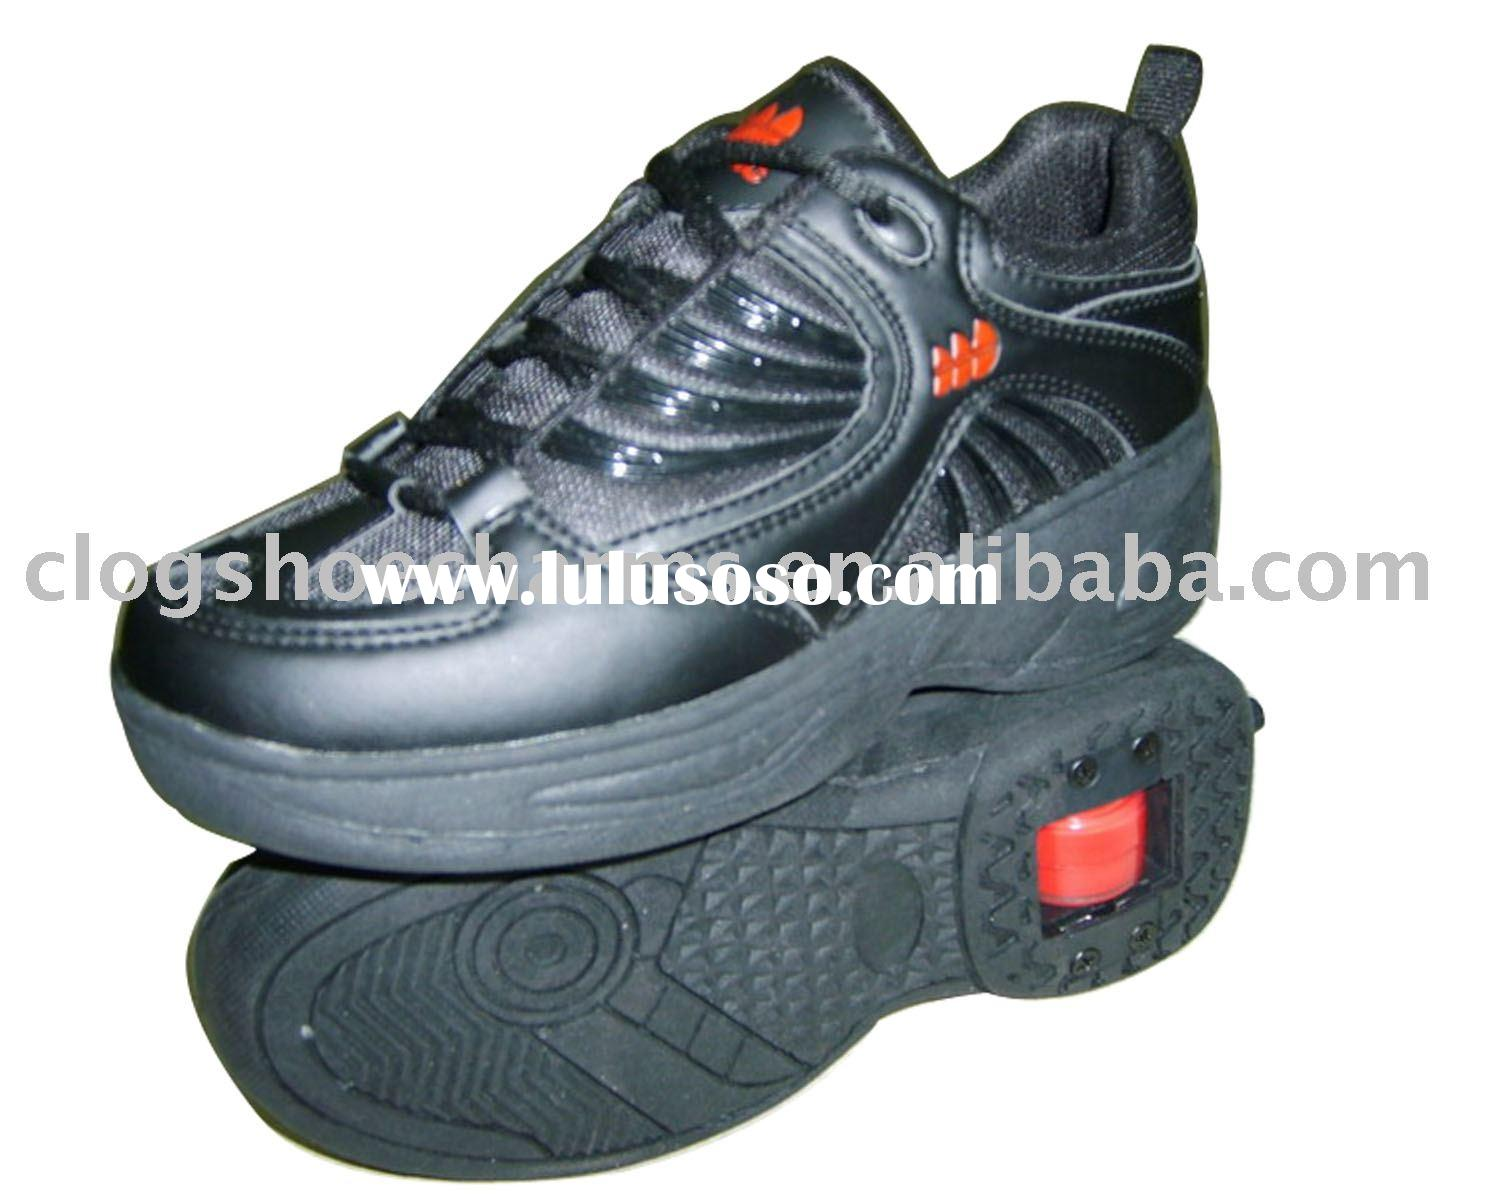 roller shoes  flying  shoes wheel shoes  wheels shoes   roller  shoes